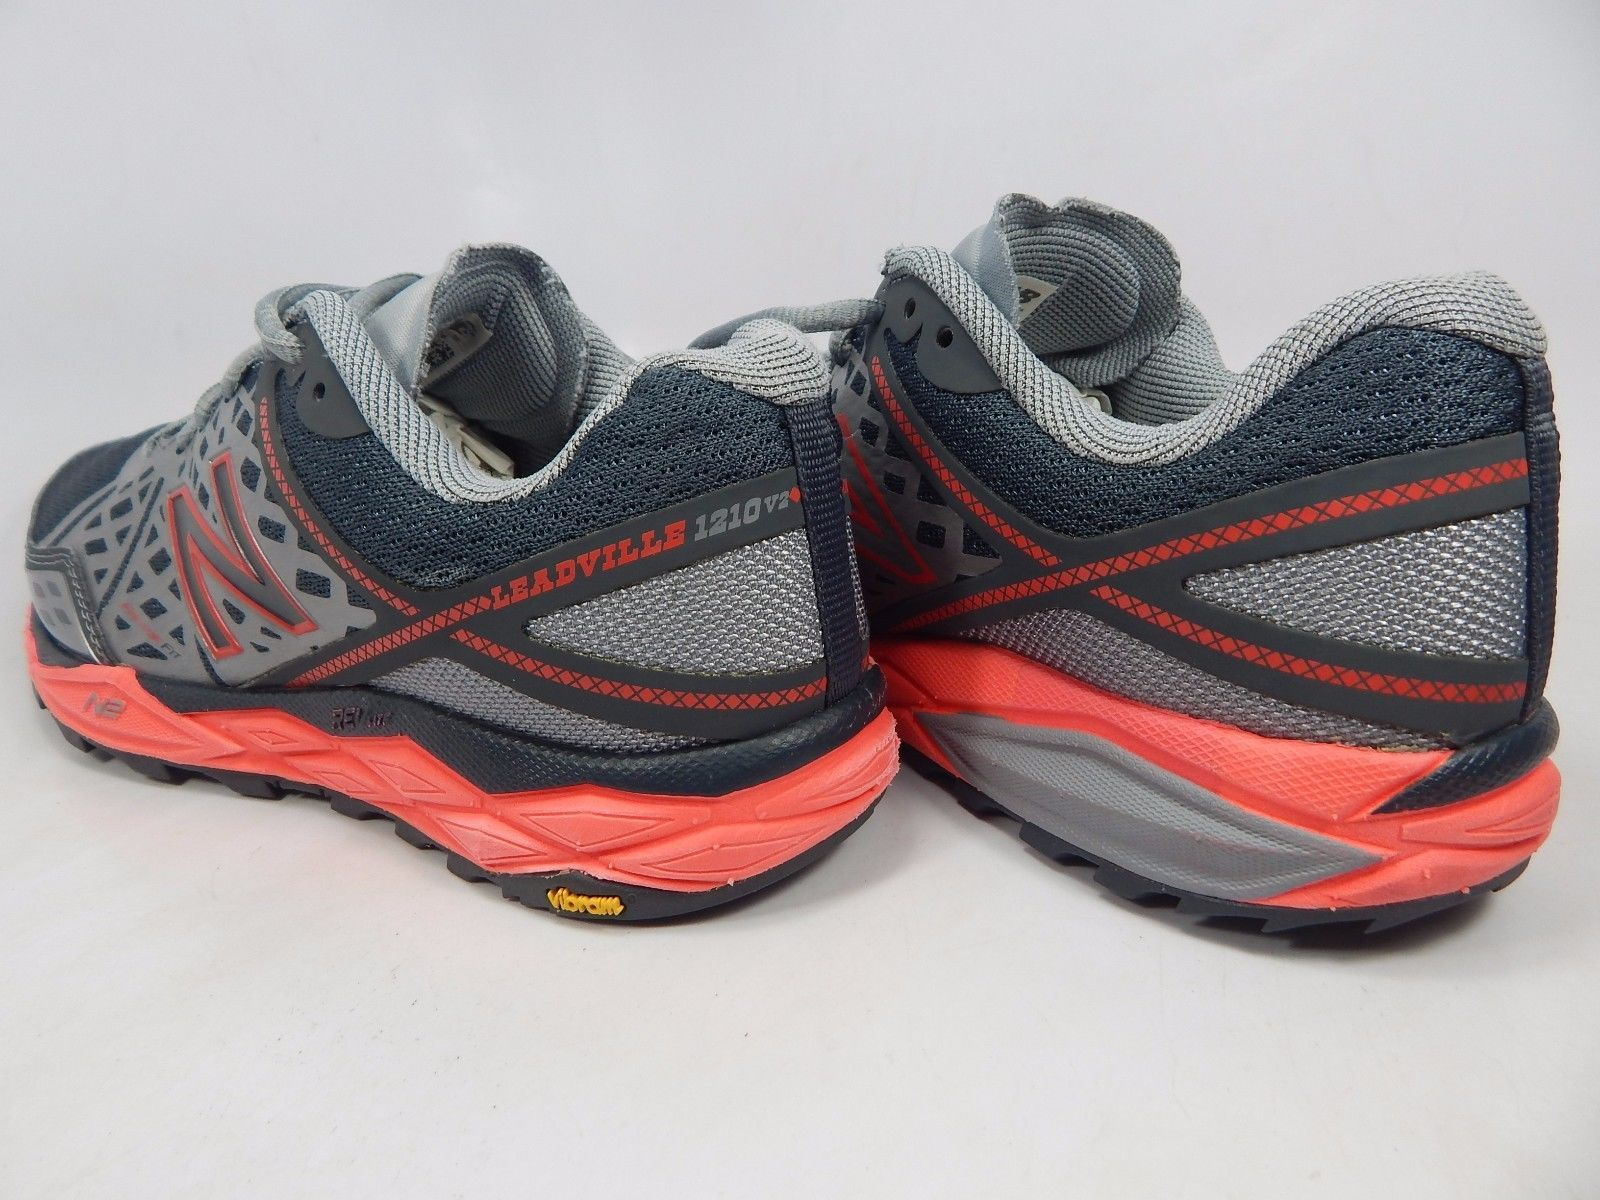 MISMATCH New Balance Leadville 1210 v2 Women's Shoes 8 Left & 7.5 Right M (B)